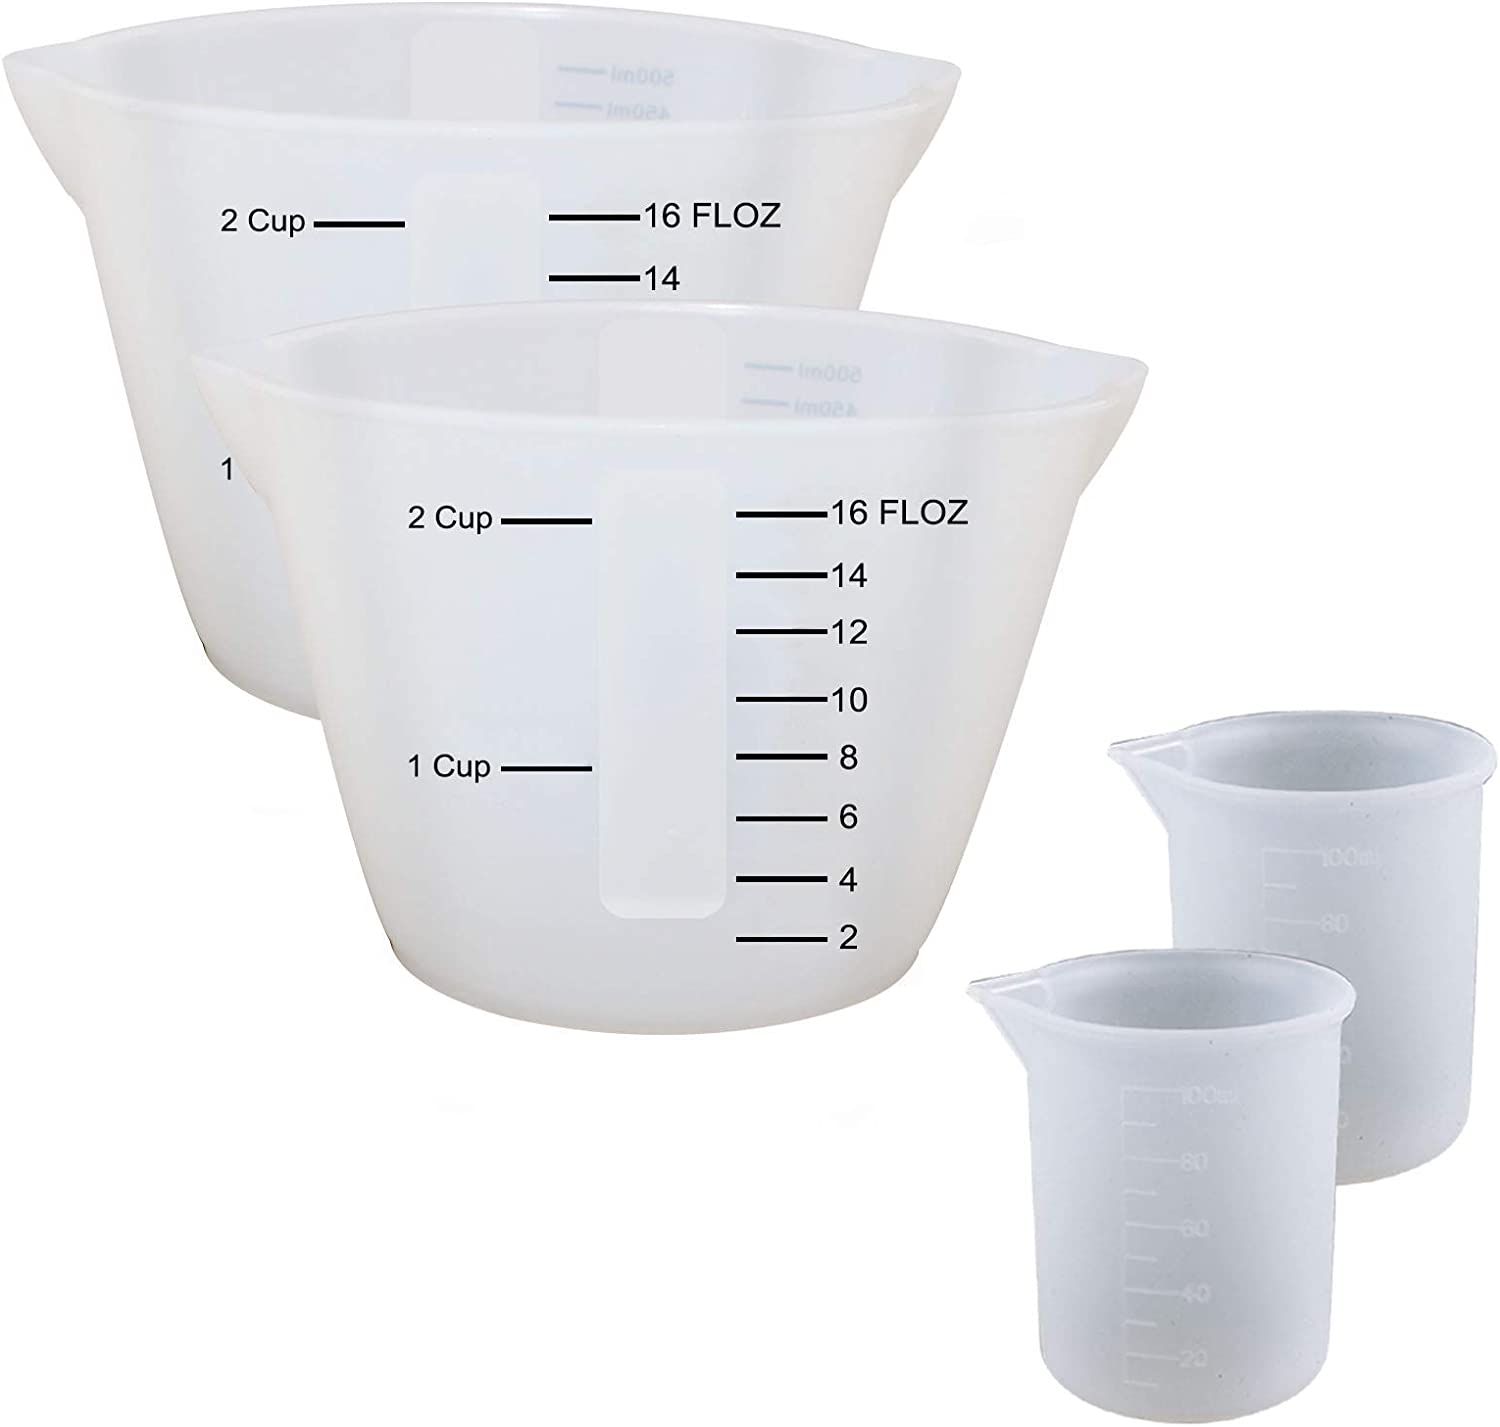 4 Low price Pieces Large Silicone Memphis Mall Measuring Mixing Resin Pourin Cups